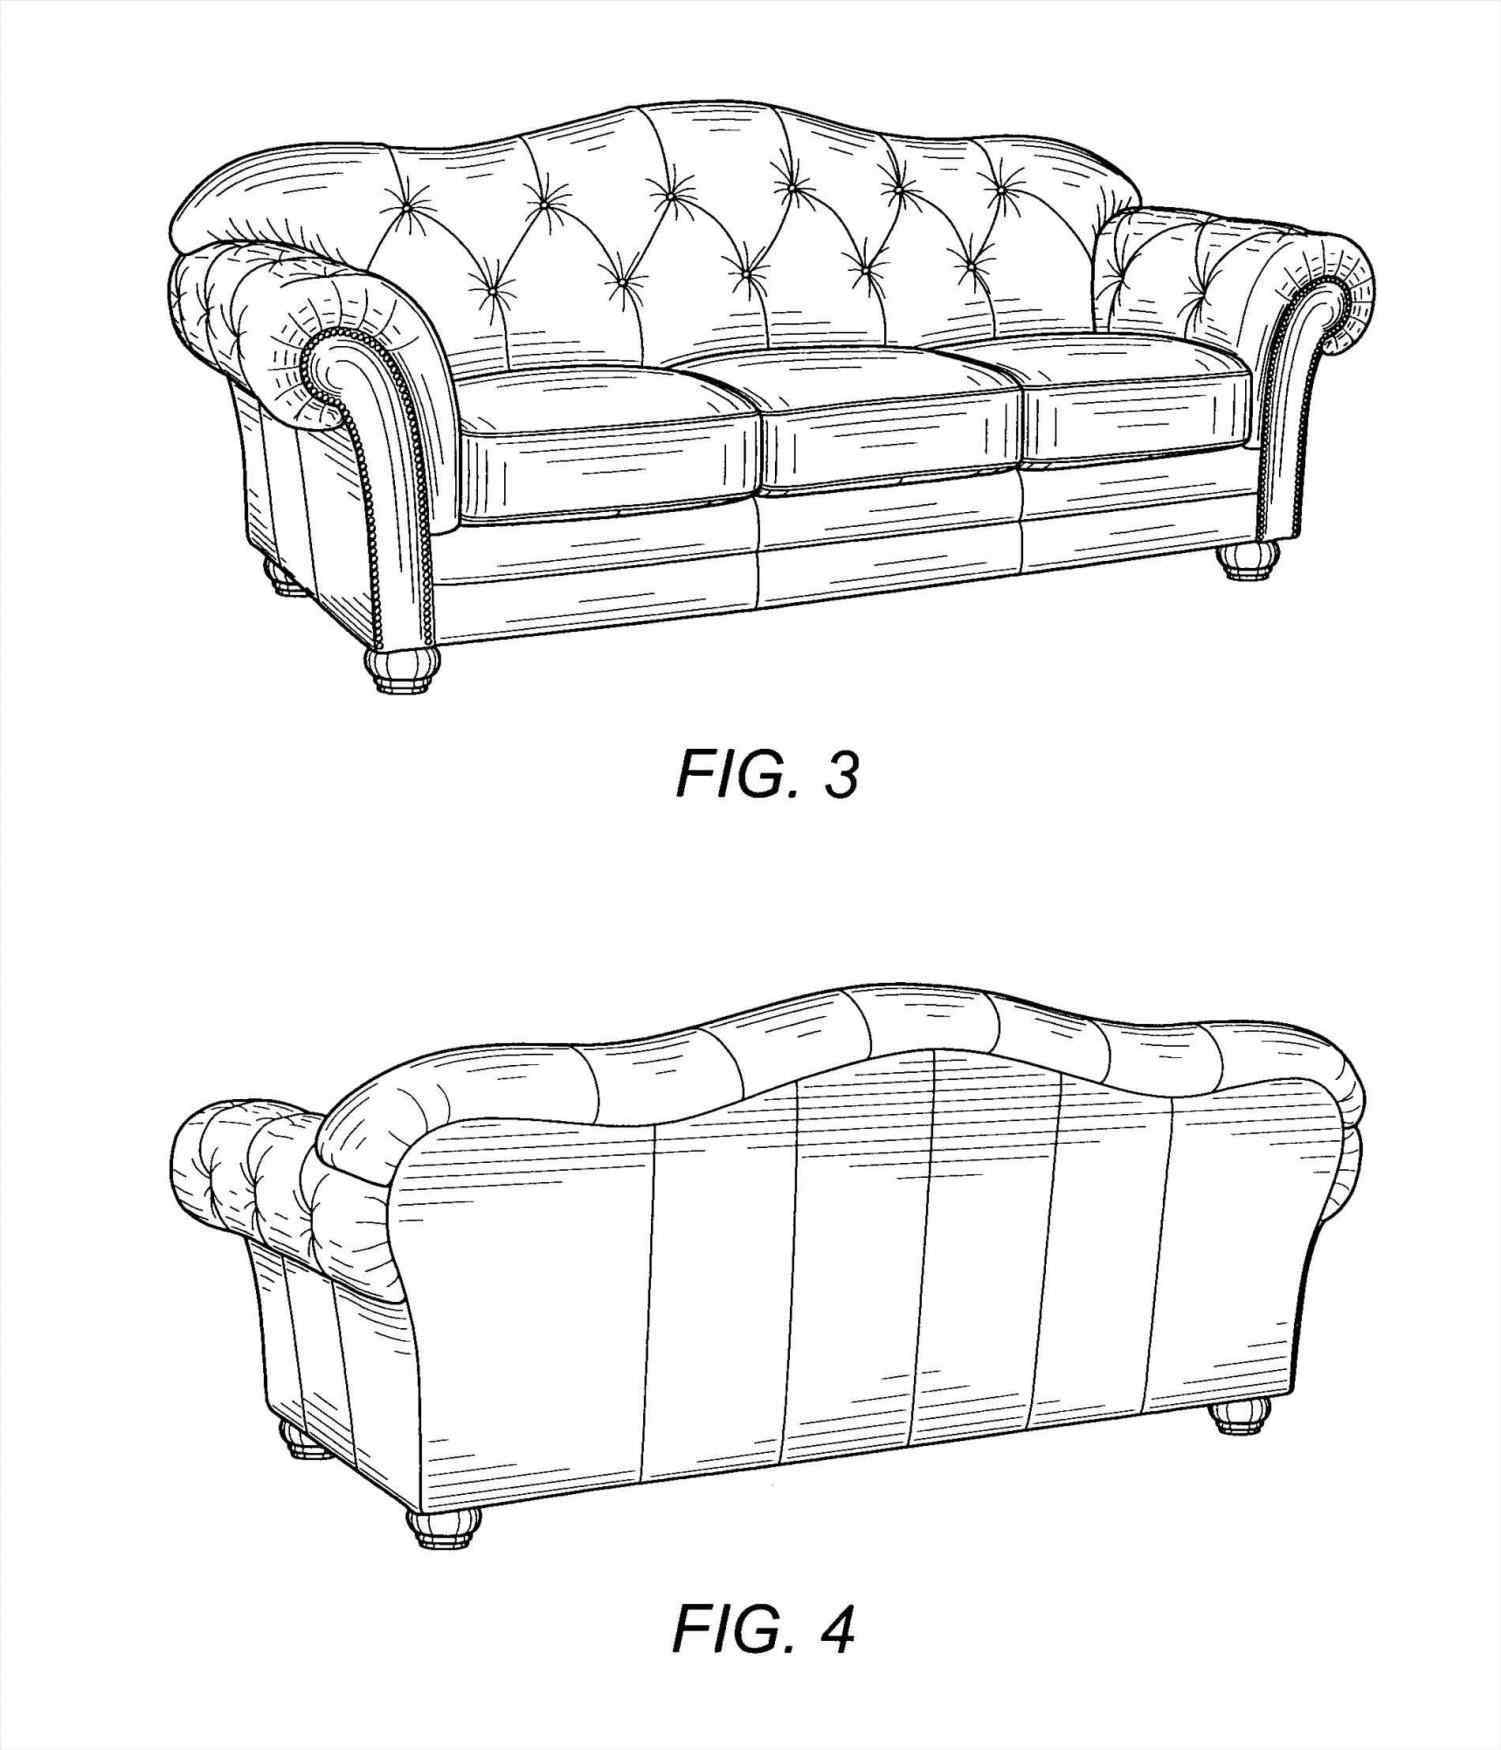 Couch clipart back couch. Drawing i locutus co